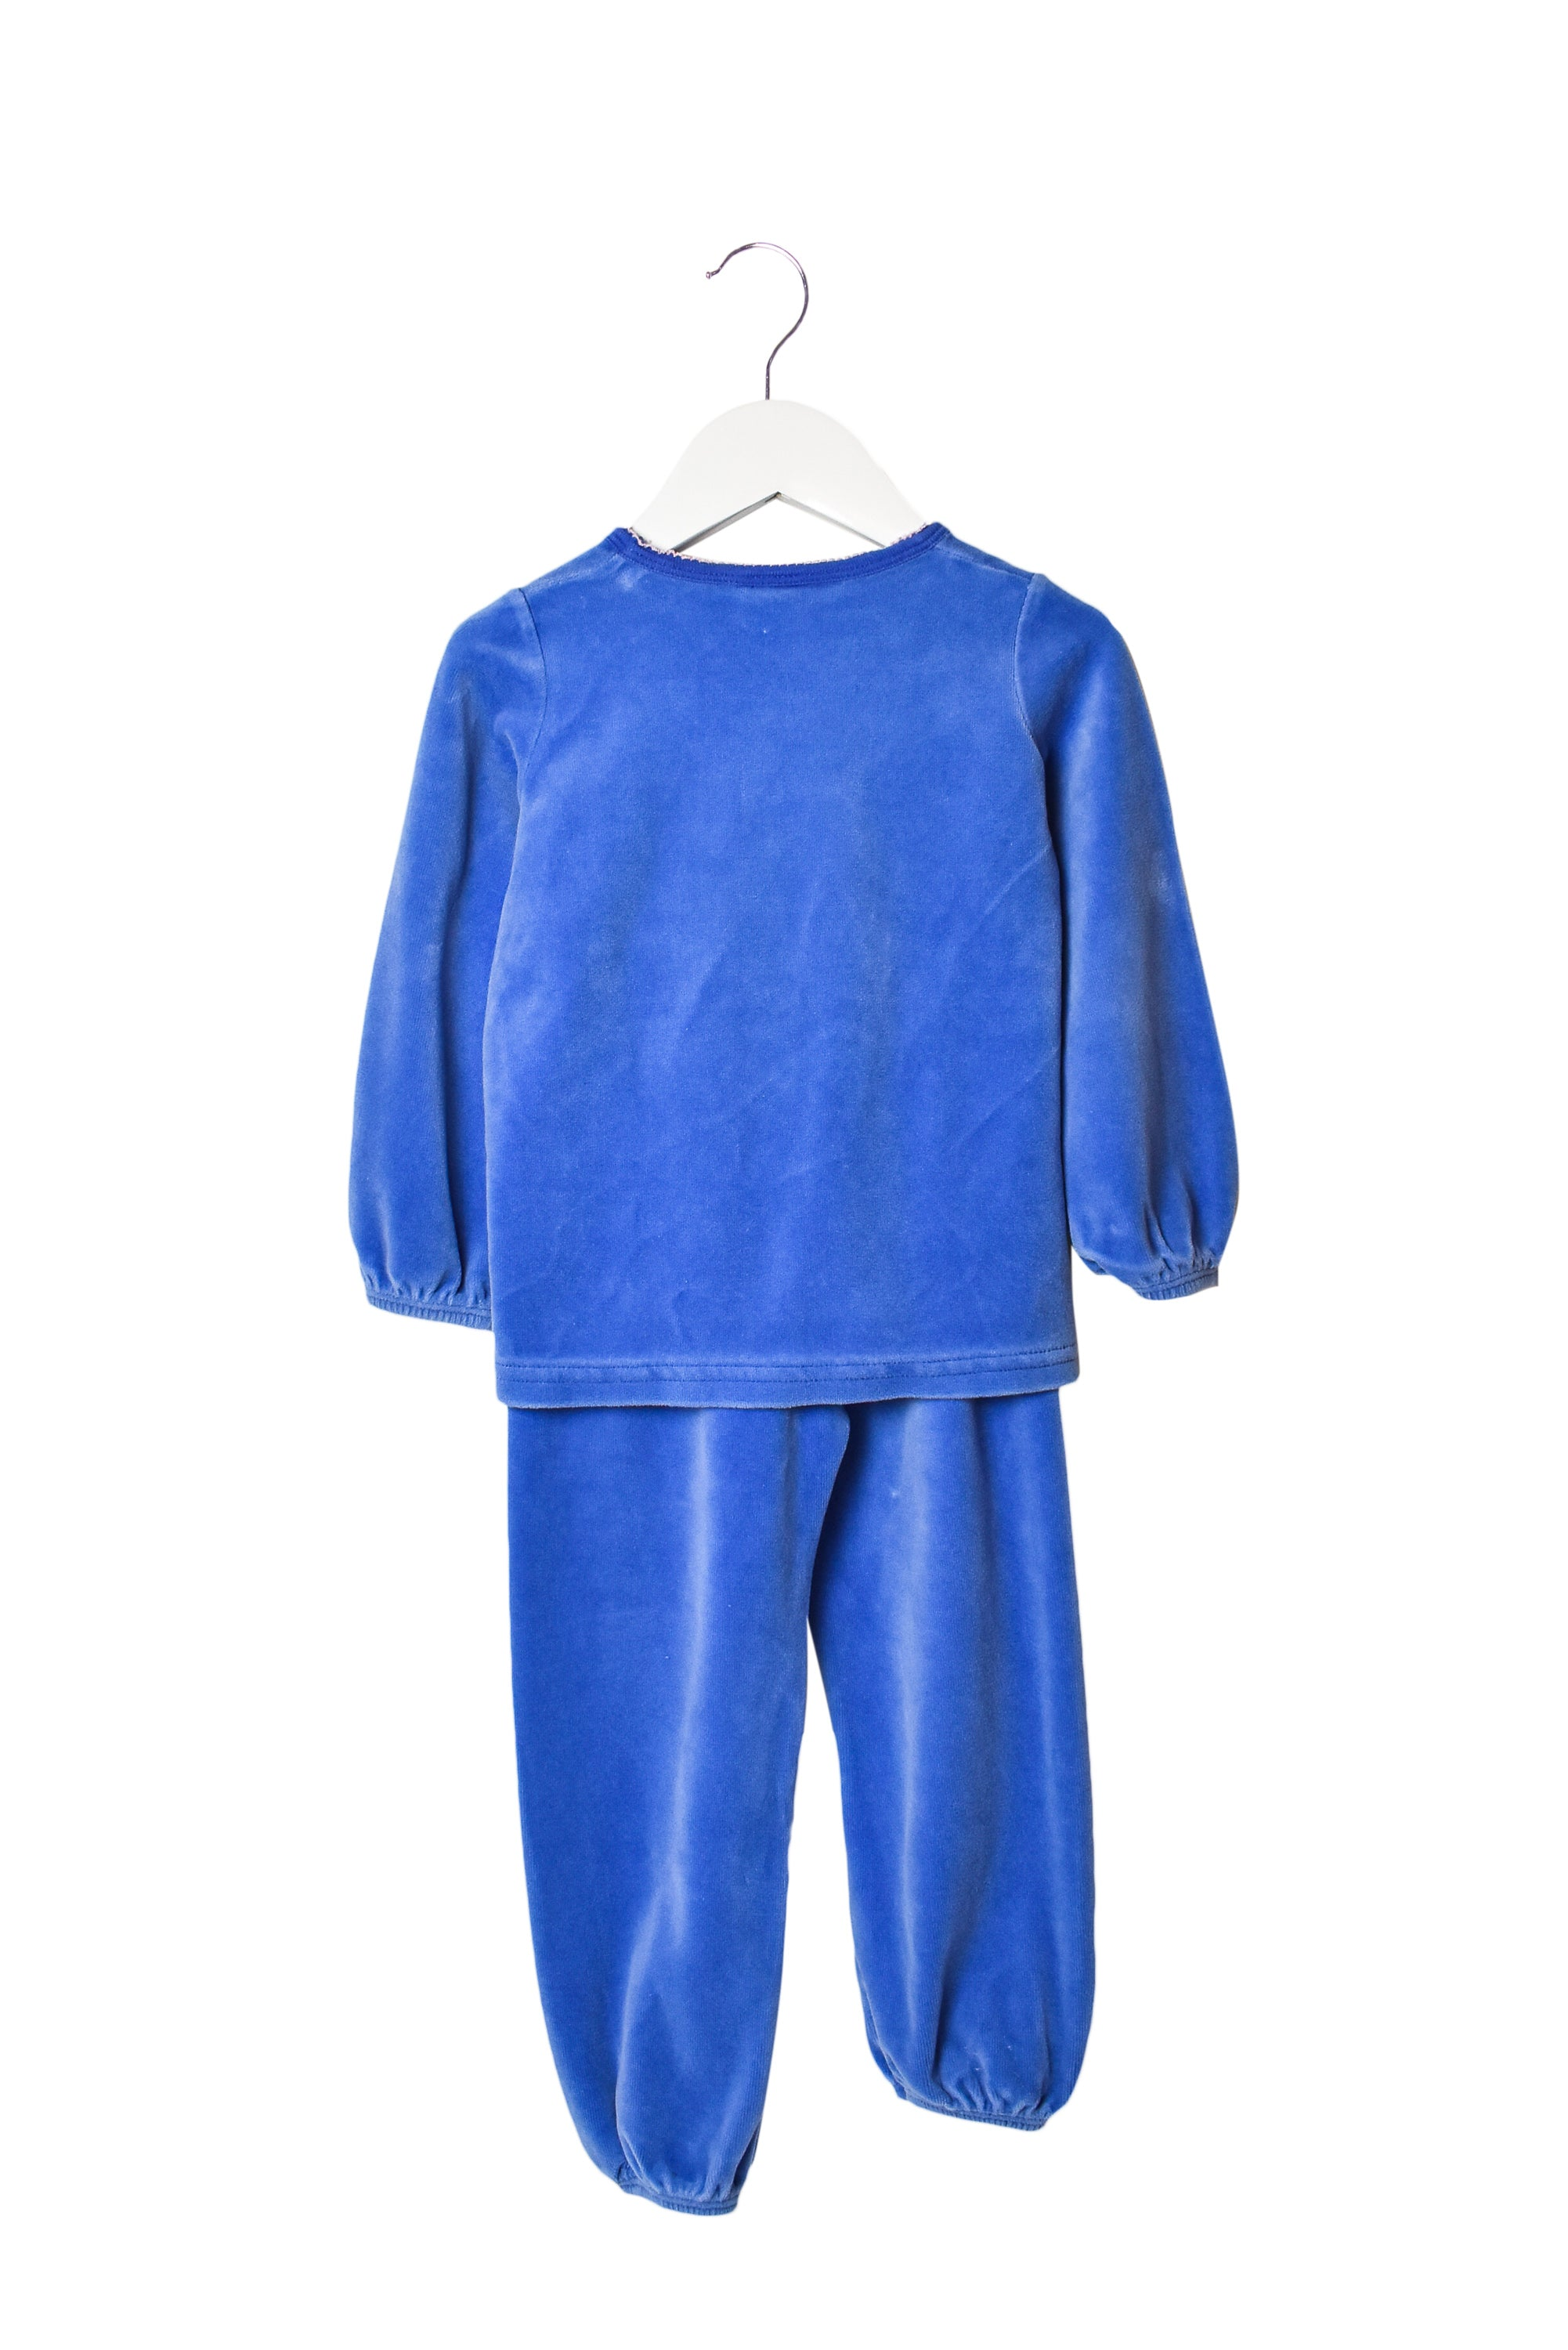 10007899 Petit Bateau Kids~ Top and Pants 3T at Retykle